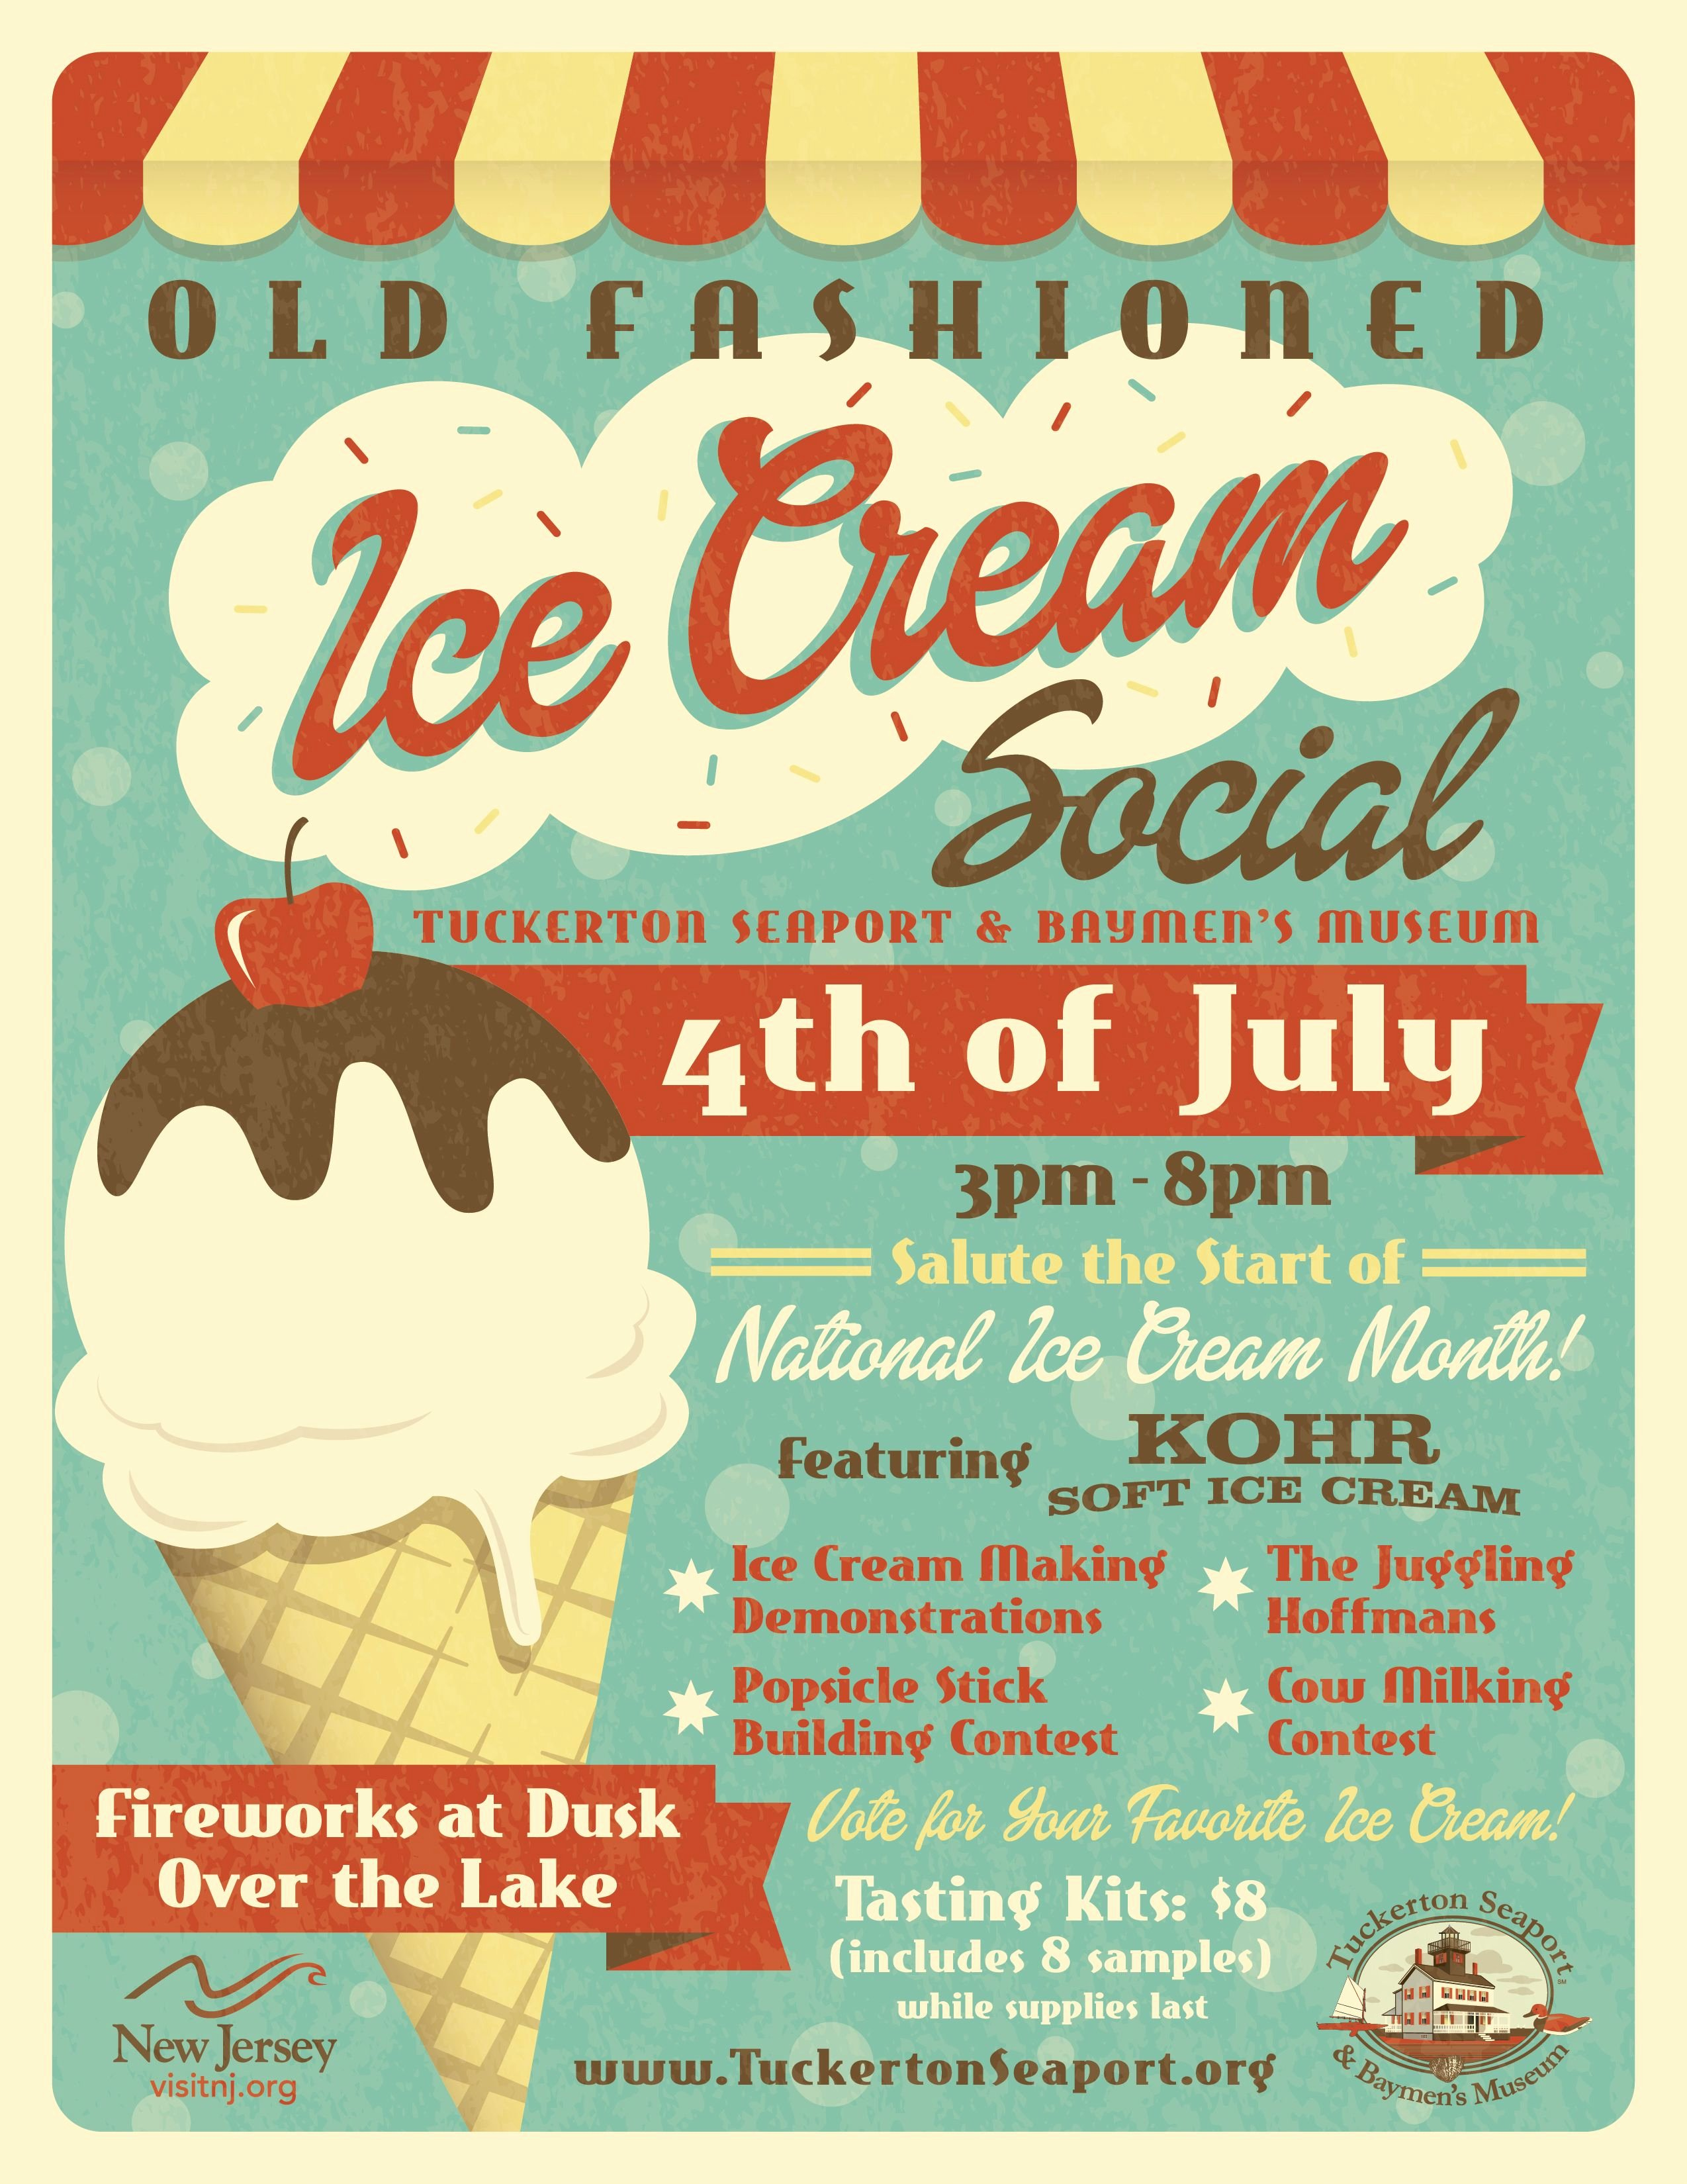 Ice Cream social Flyer Template Free Awesome Designs Flyers Ice Cream Shop Google Search